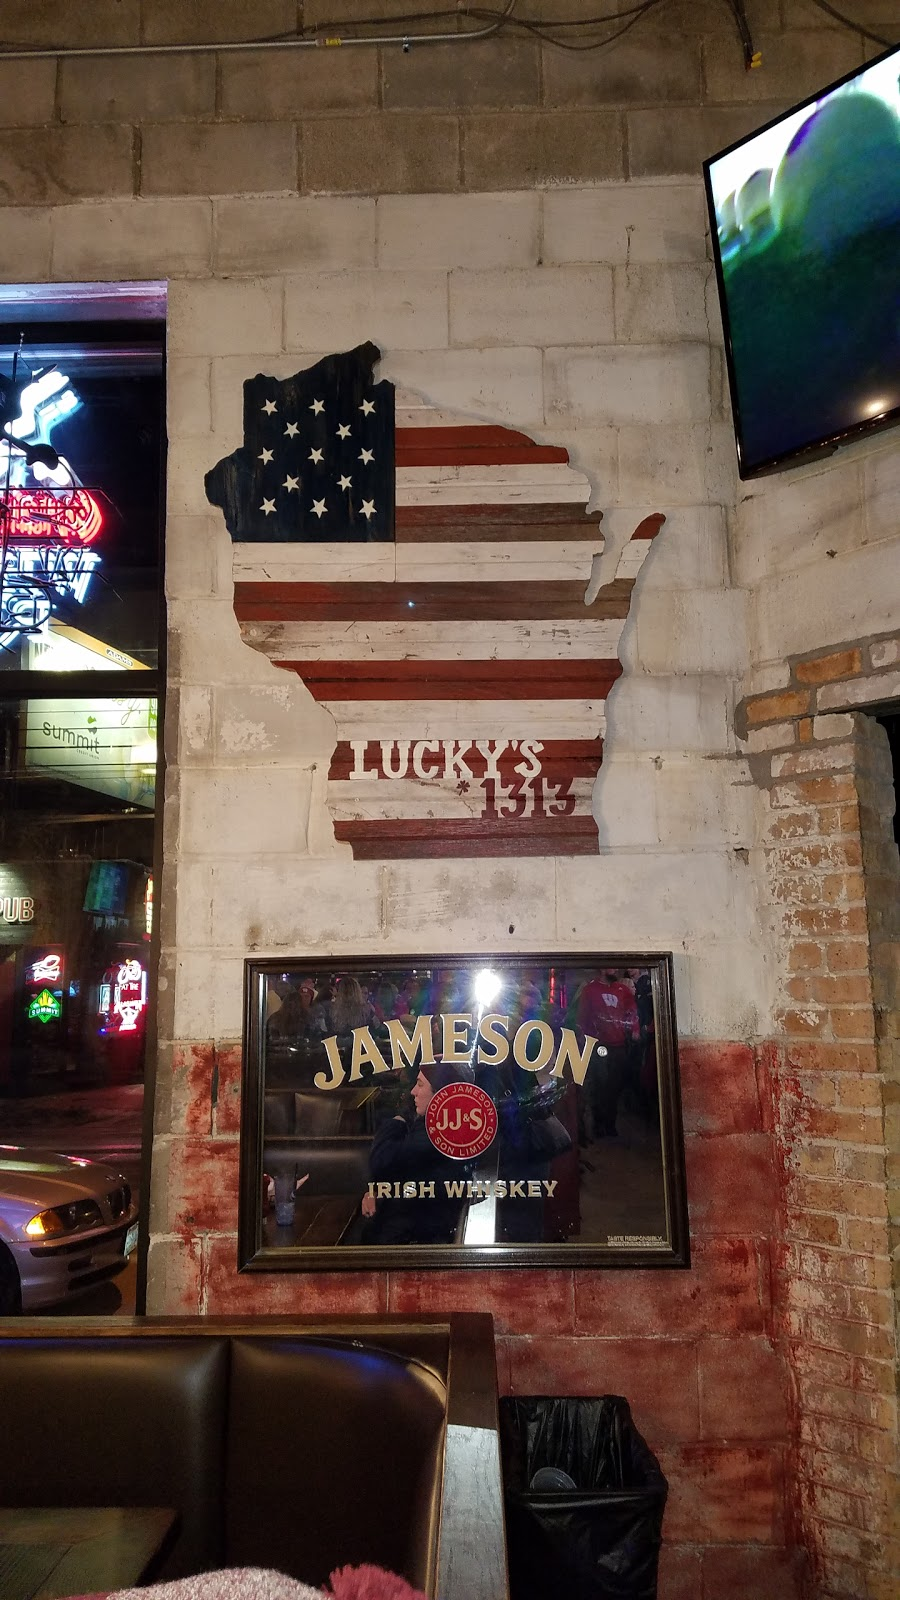 Luckys 1313 Brew Pub | restaurant | 1313 Regent St, Madison, WI 53715, USA | 6082508989 OR +1 608-250-8989